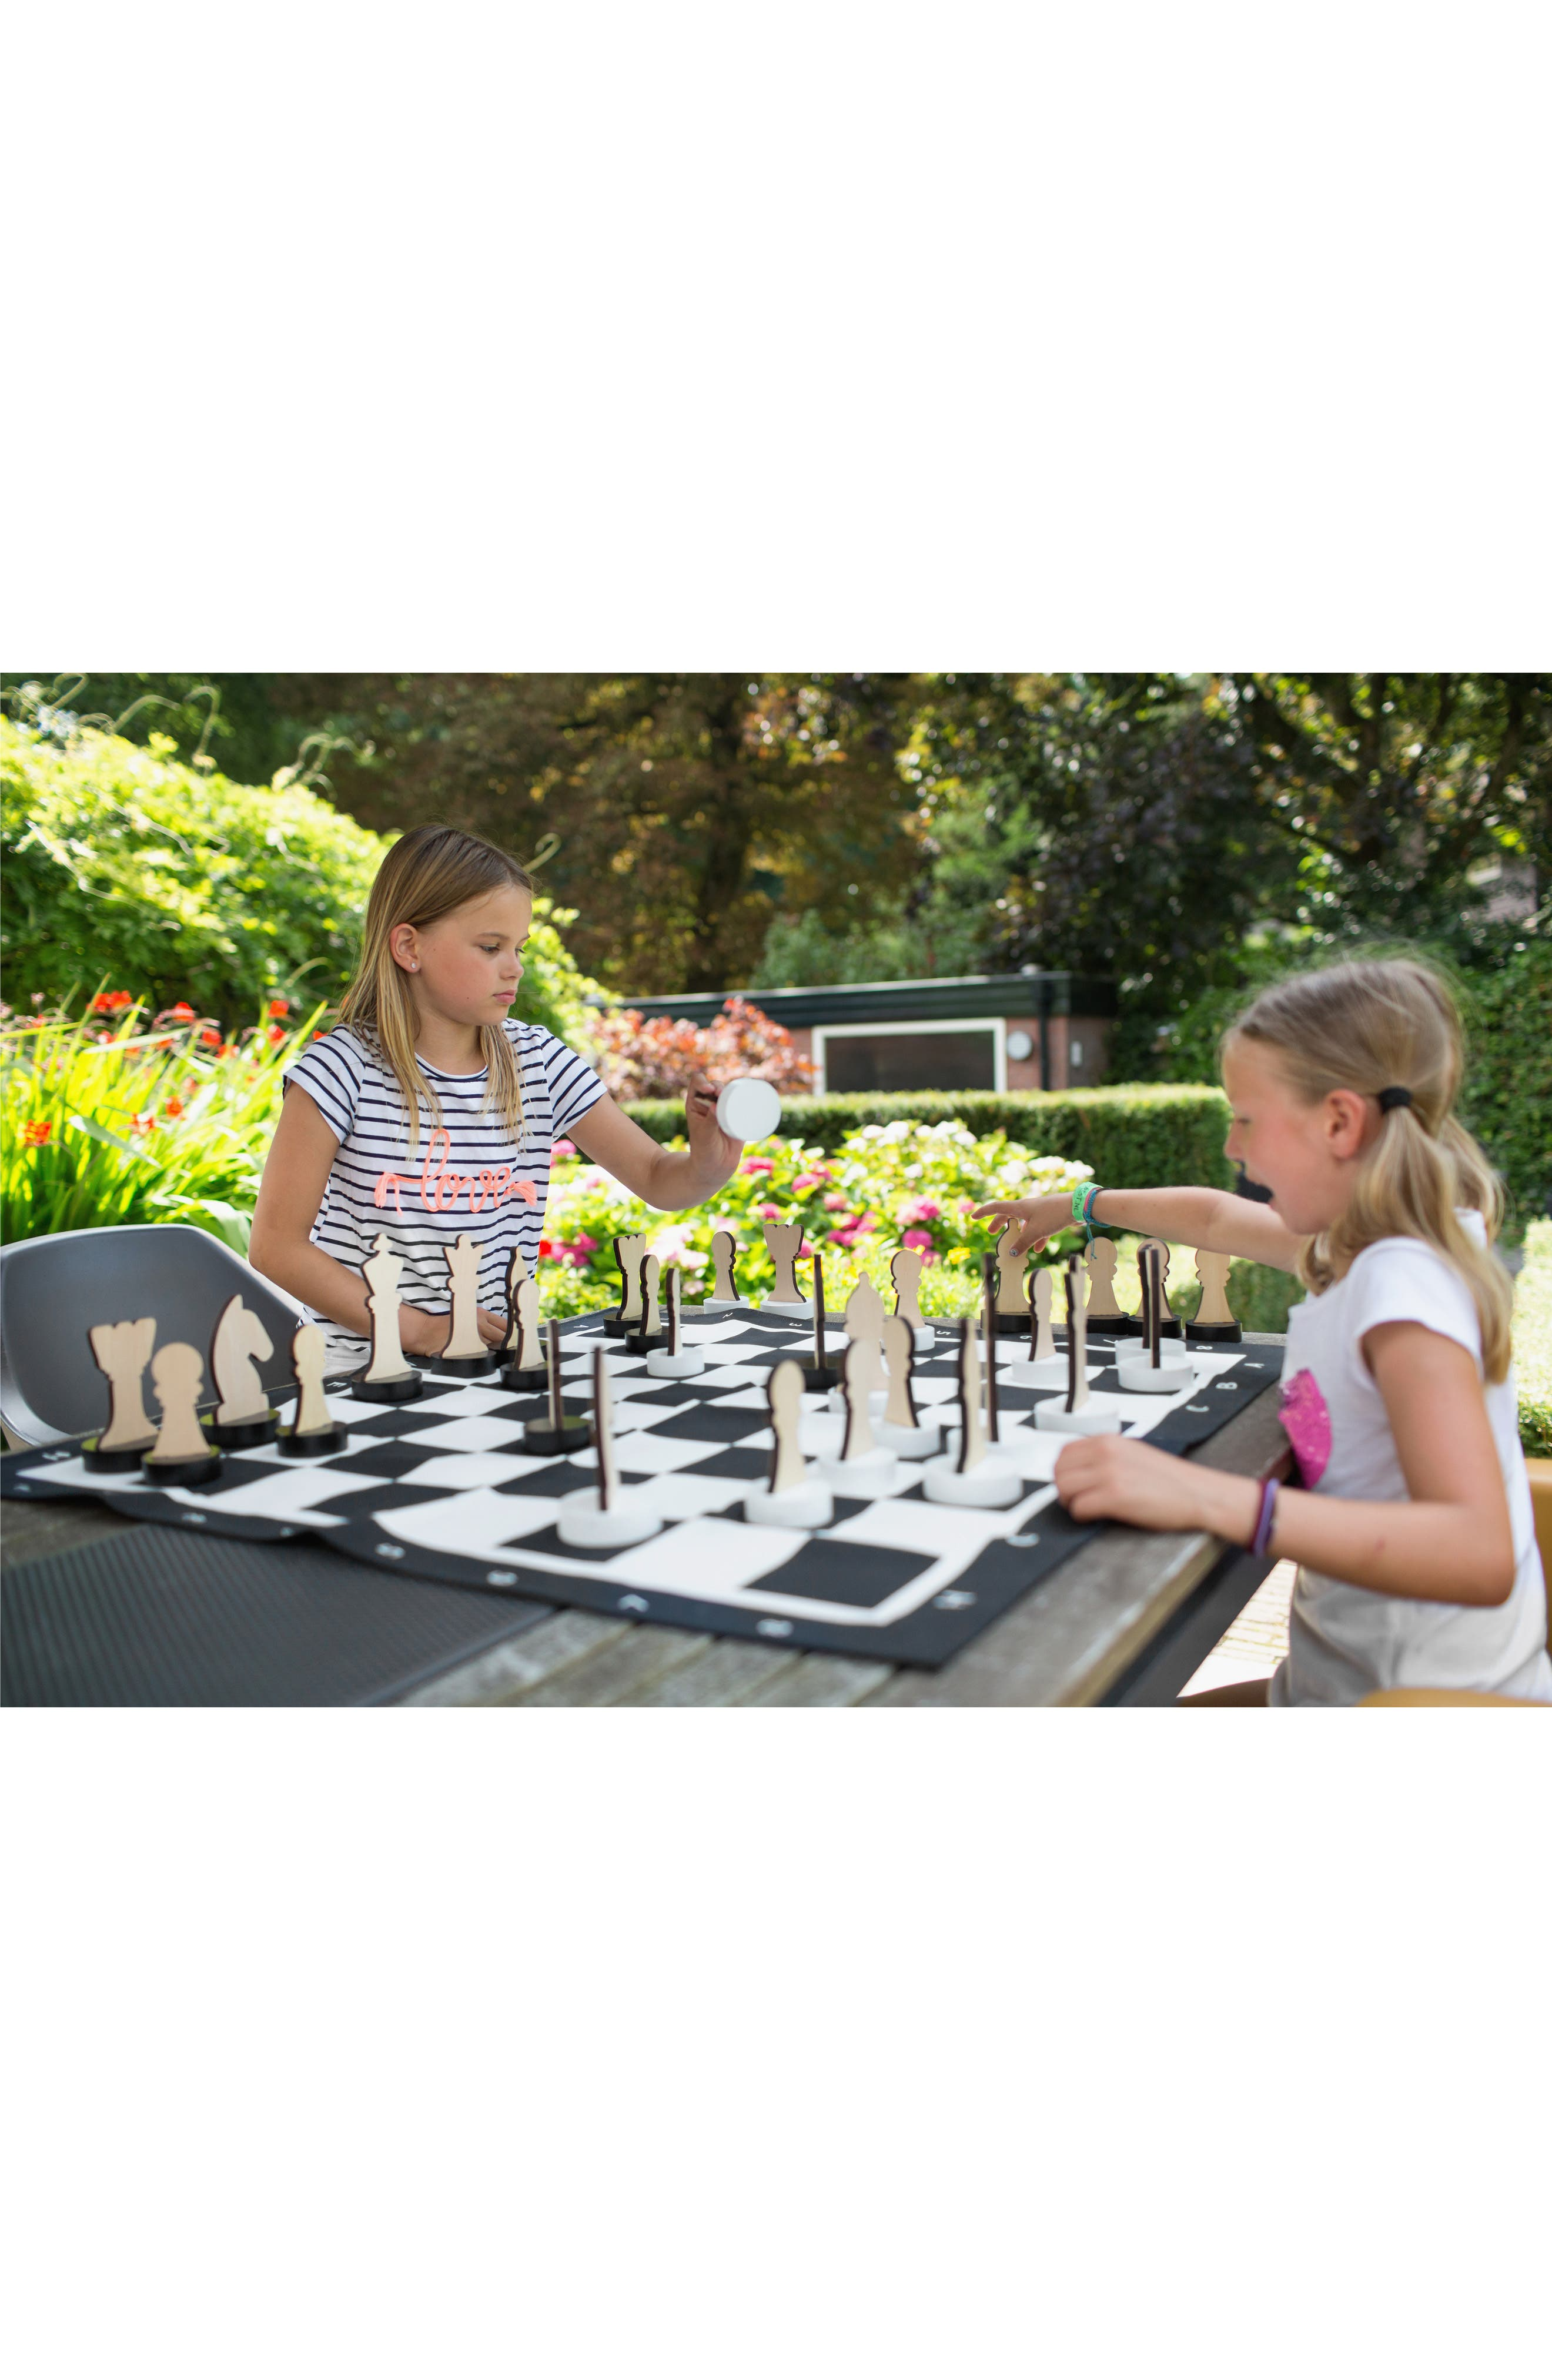 XL Indoor/Outdoor Chess Game,                             Alternate thumbnail 4, color,                             Black